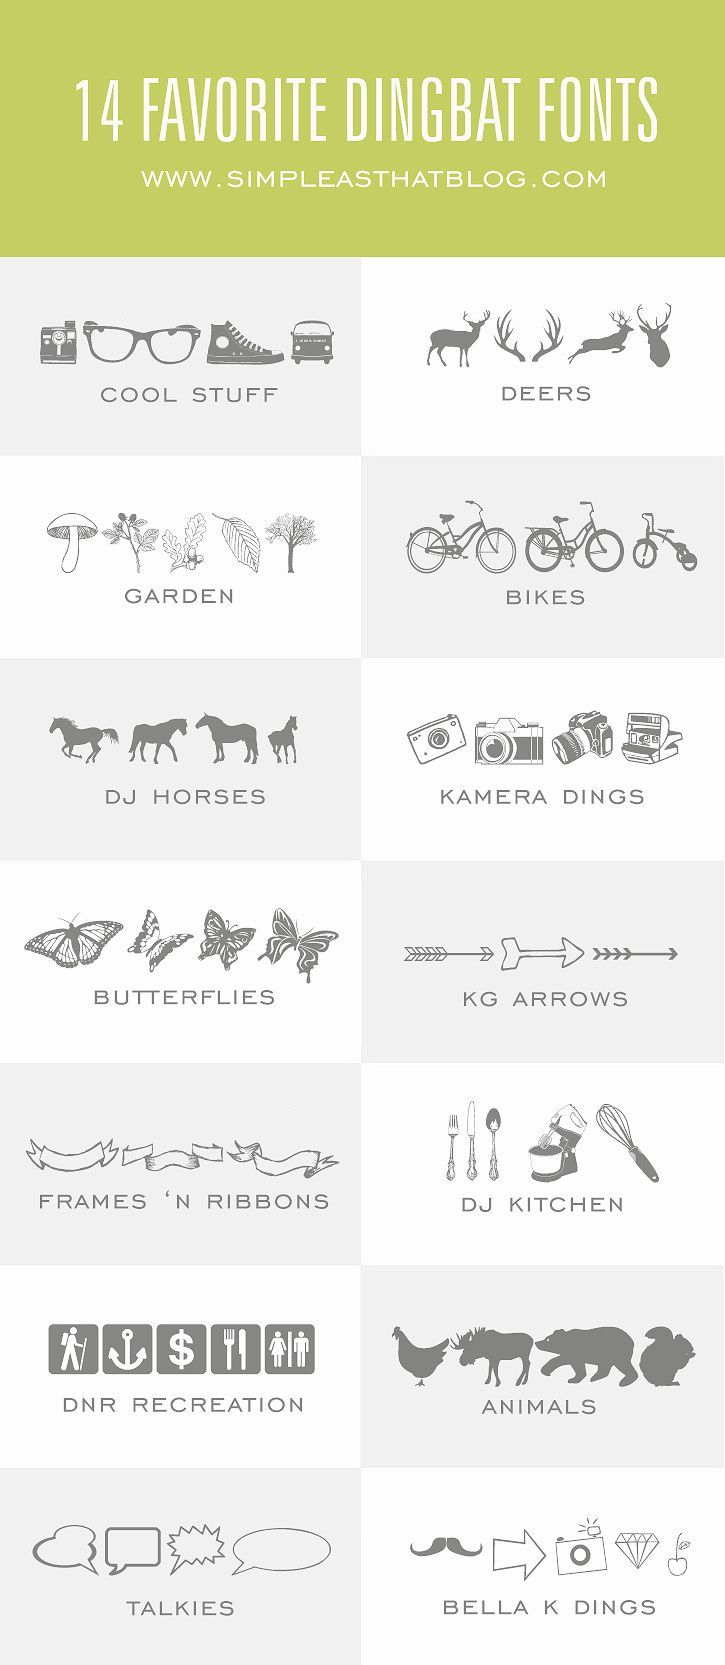 14 Favorite Dingbat Fonts - best thing about these? You can use them with your Silhouette to cut them out.